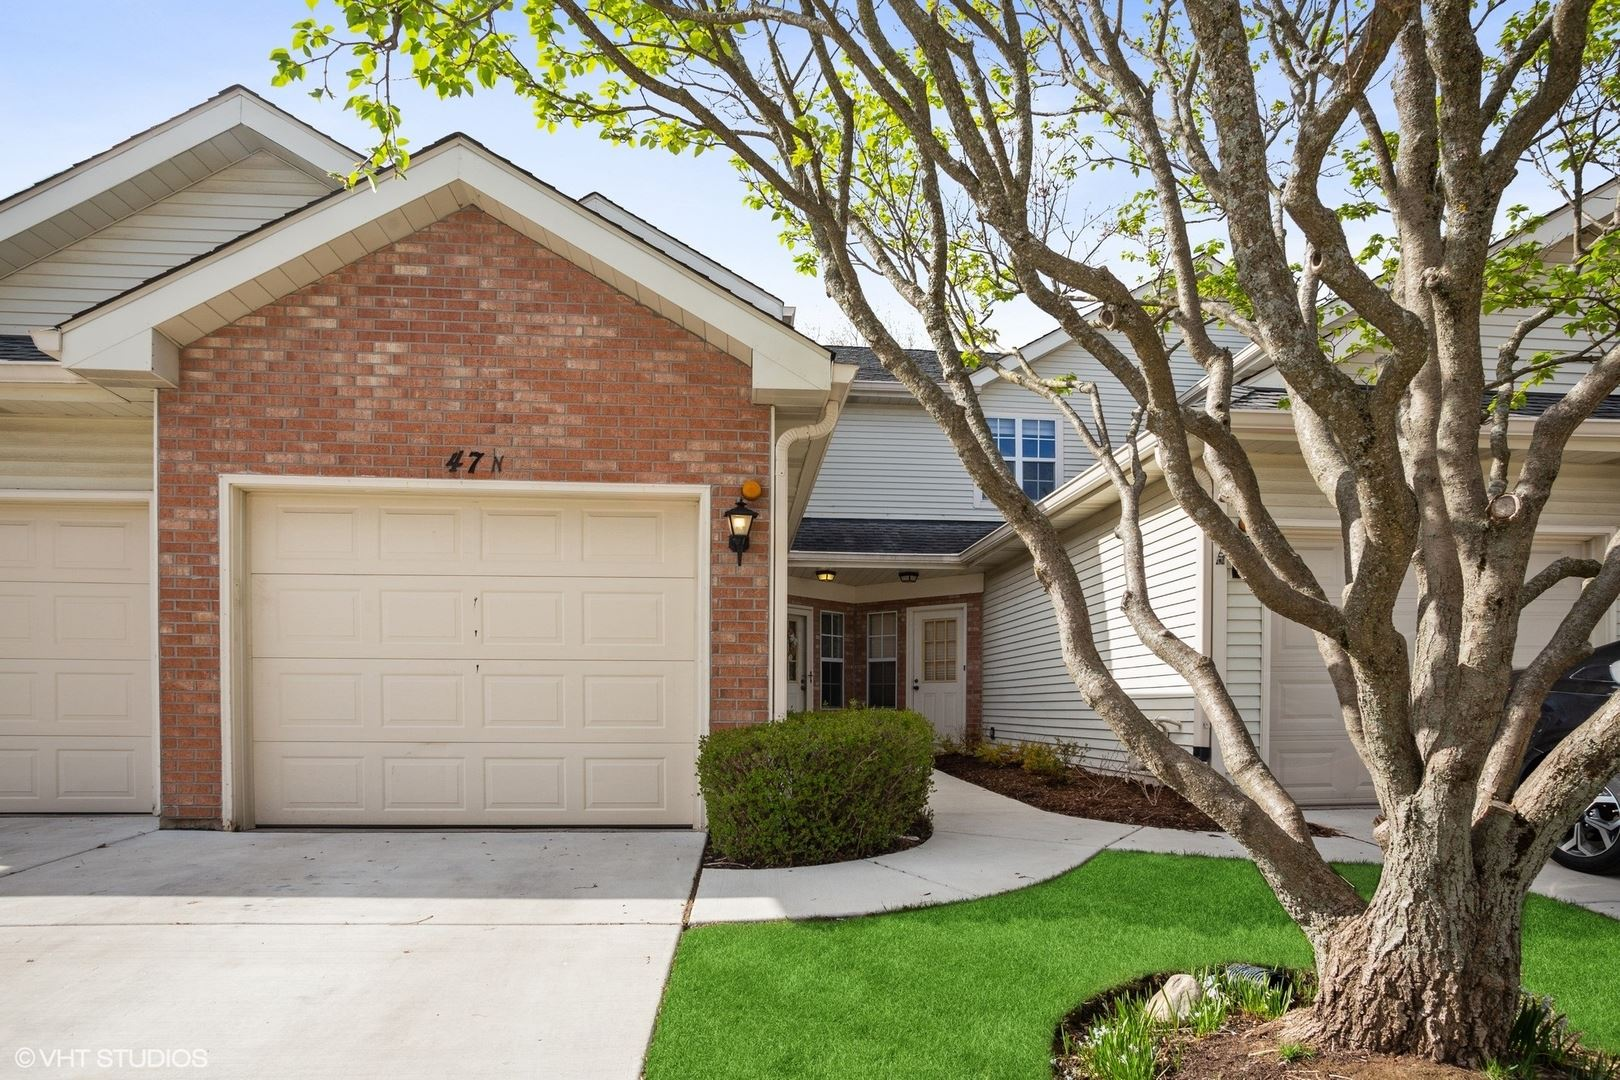 47 N Golfview Court, Glendale Heights, IL 60139 - #: 11056592